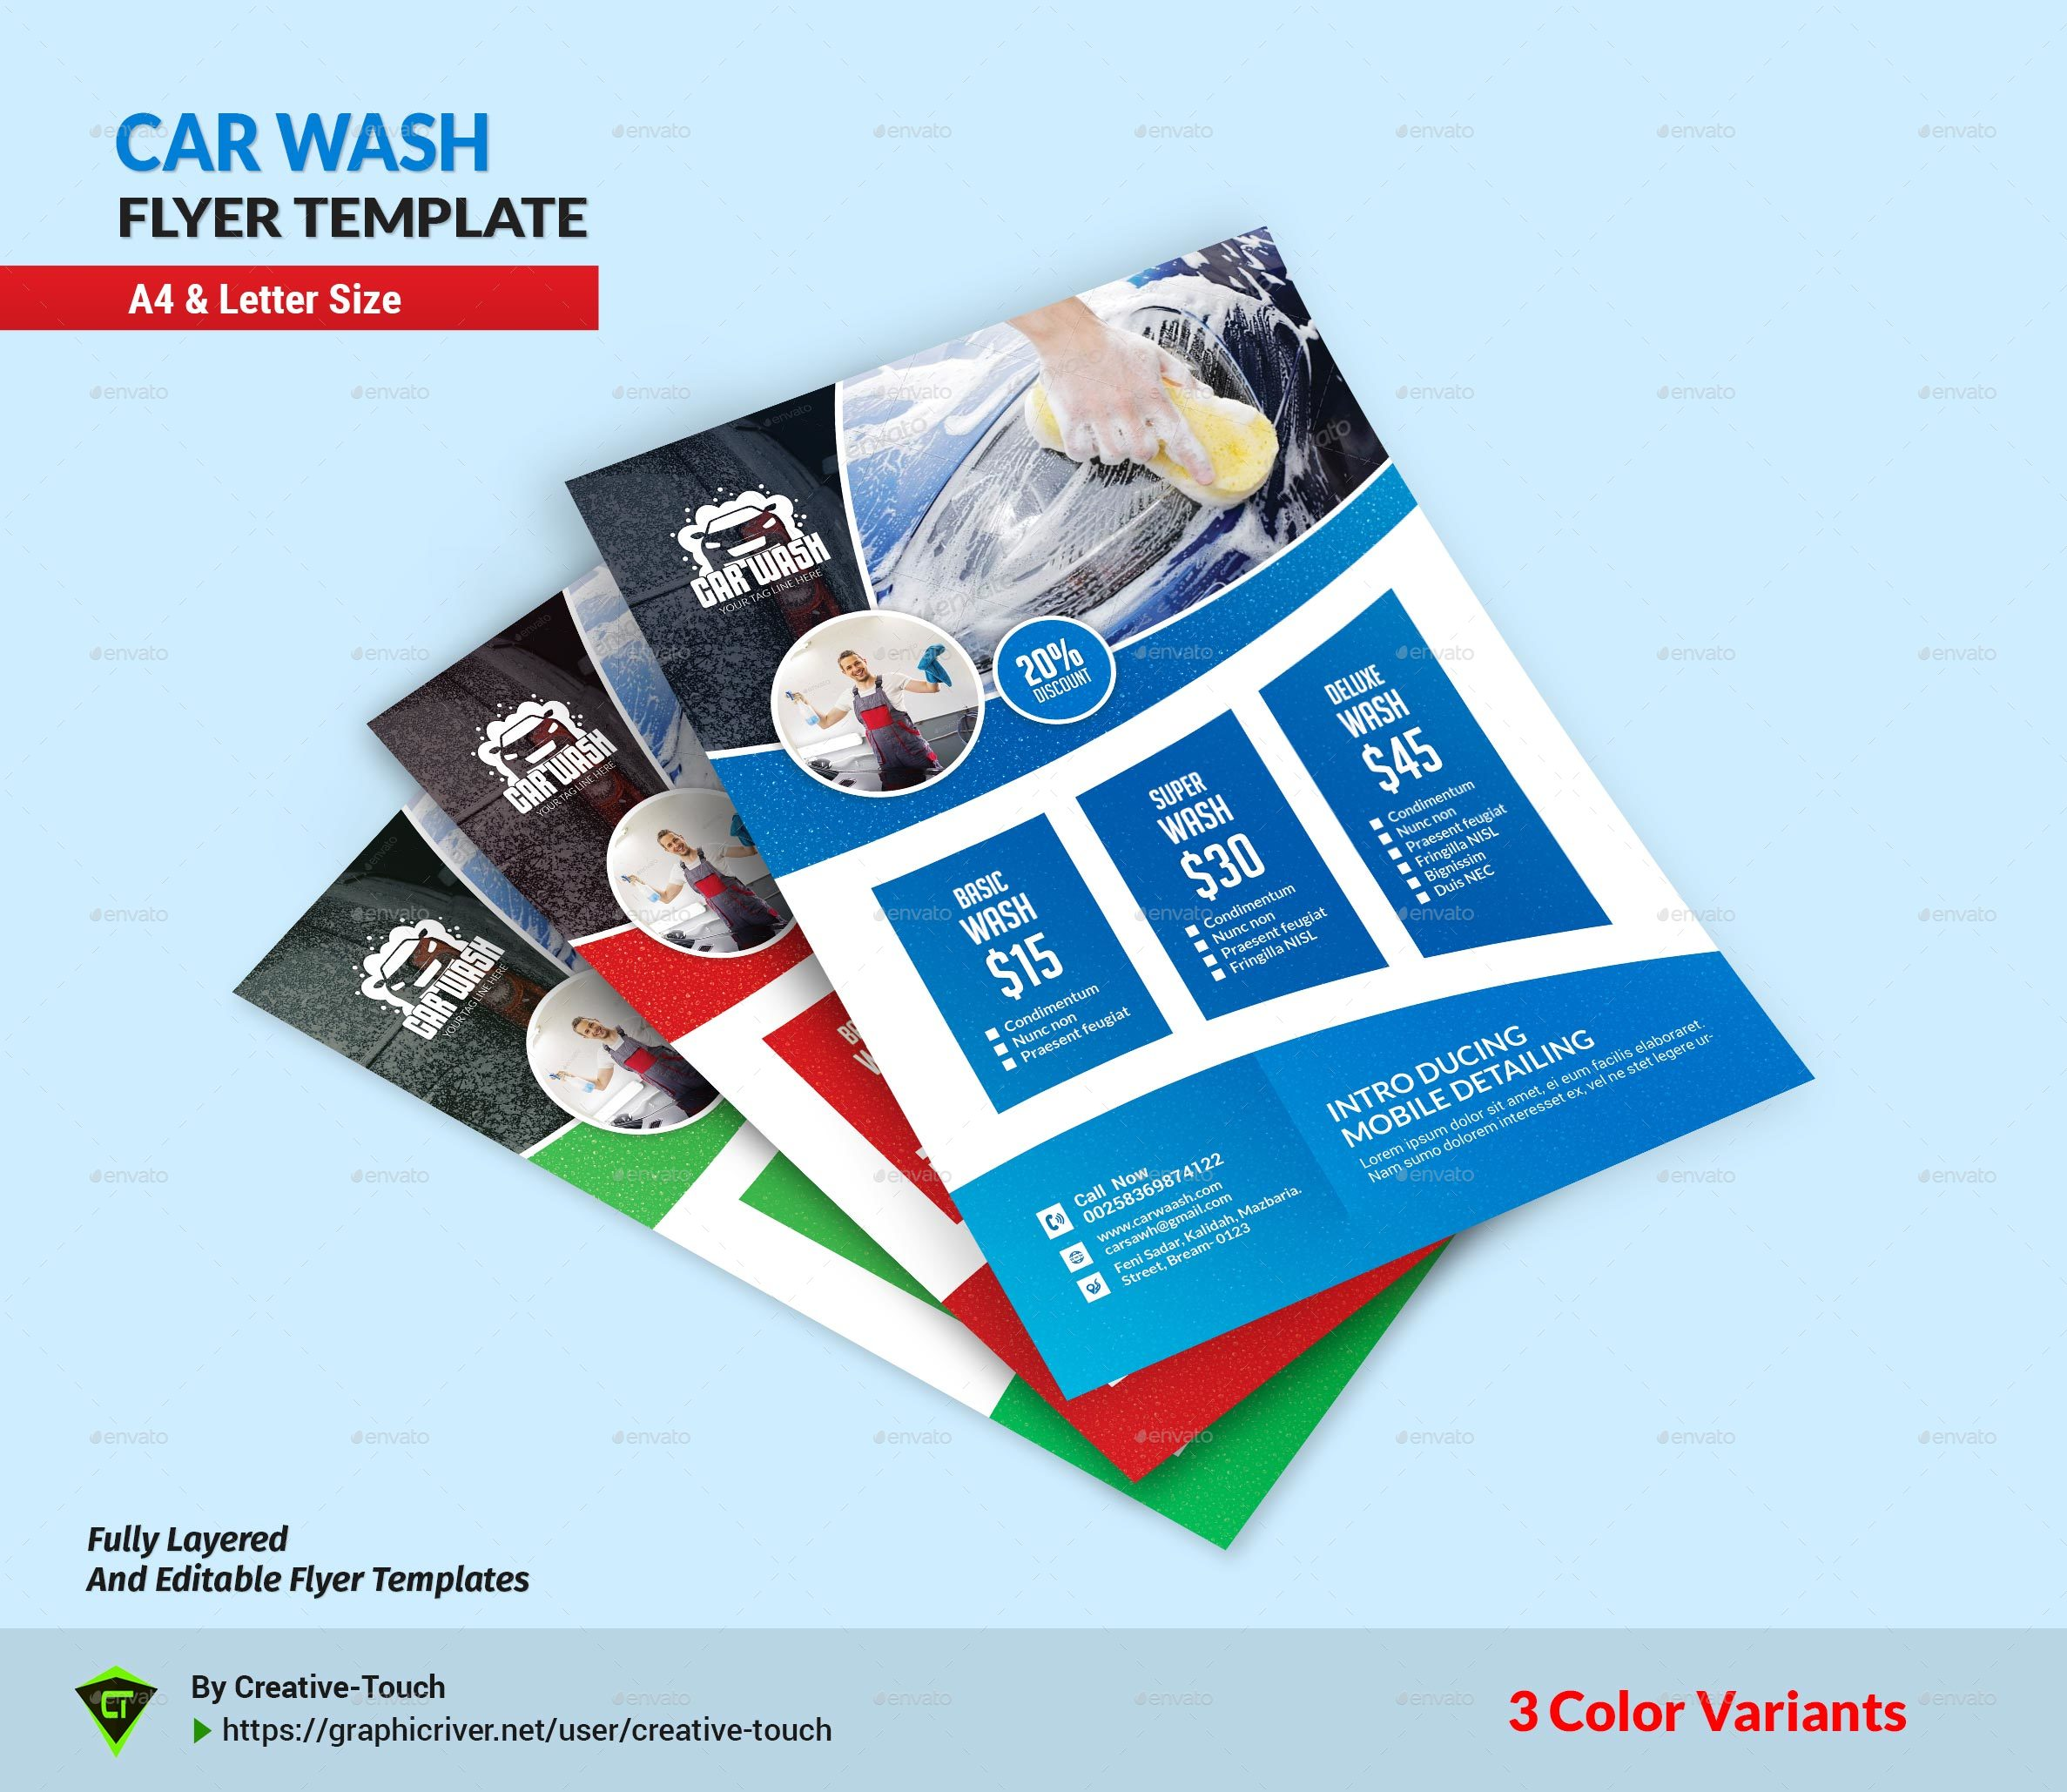 Car Wash Advertising Bundle Vol.3 By Creative-Touch